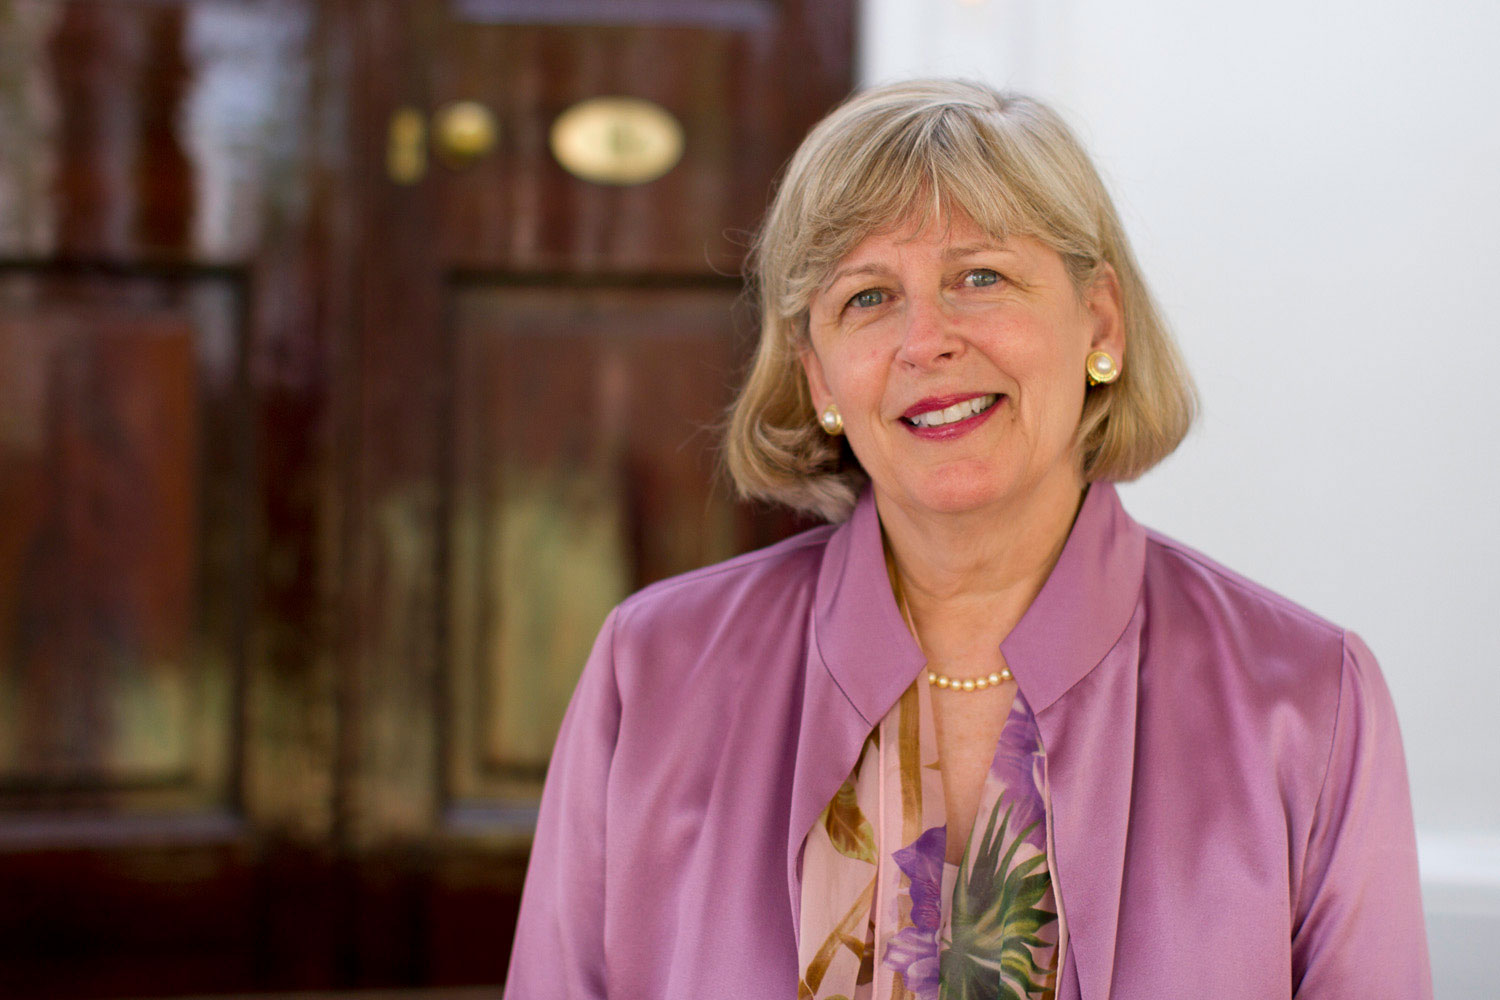 Fontaine retired from her dean position July 31 and is co-editing a book with colleagues while on sabbatical this year.